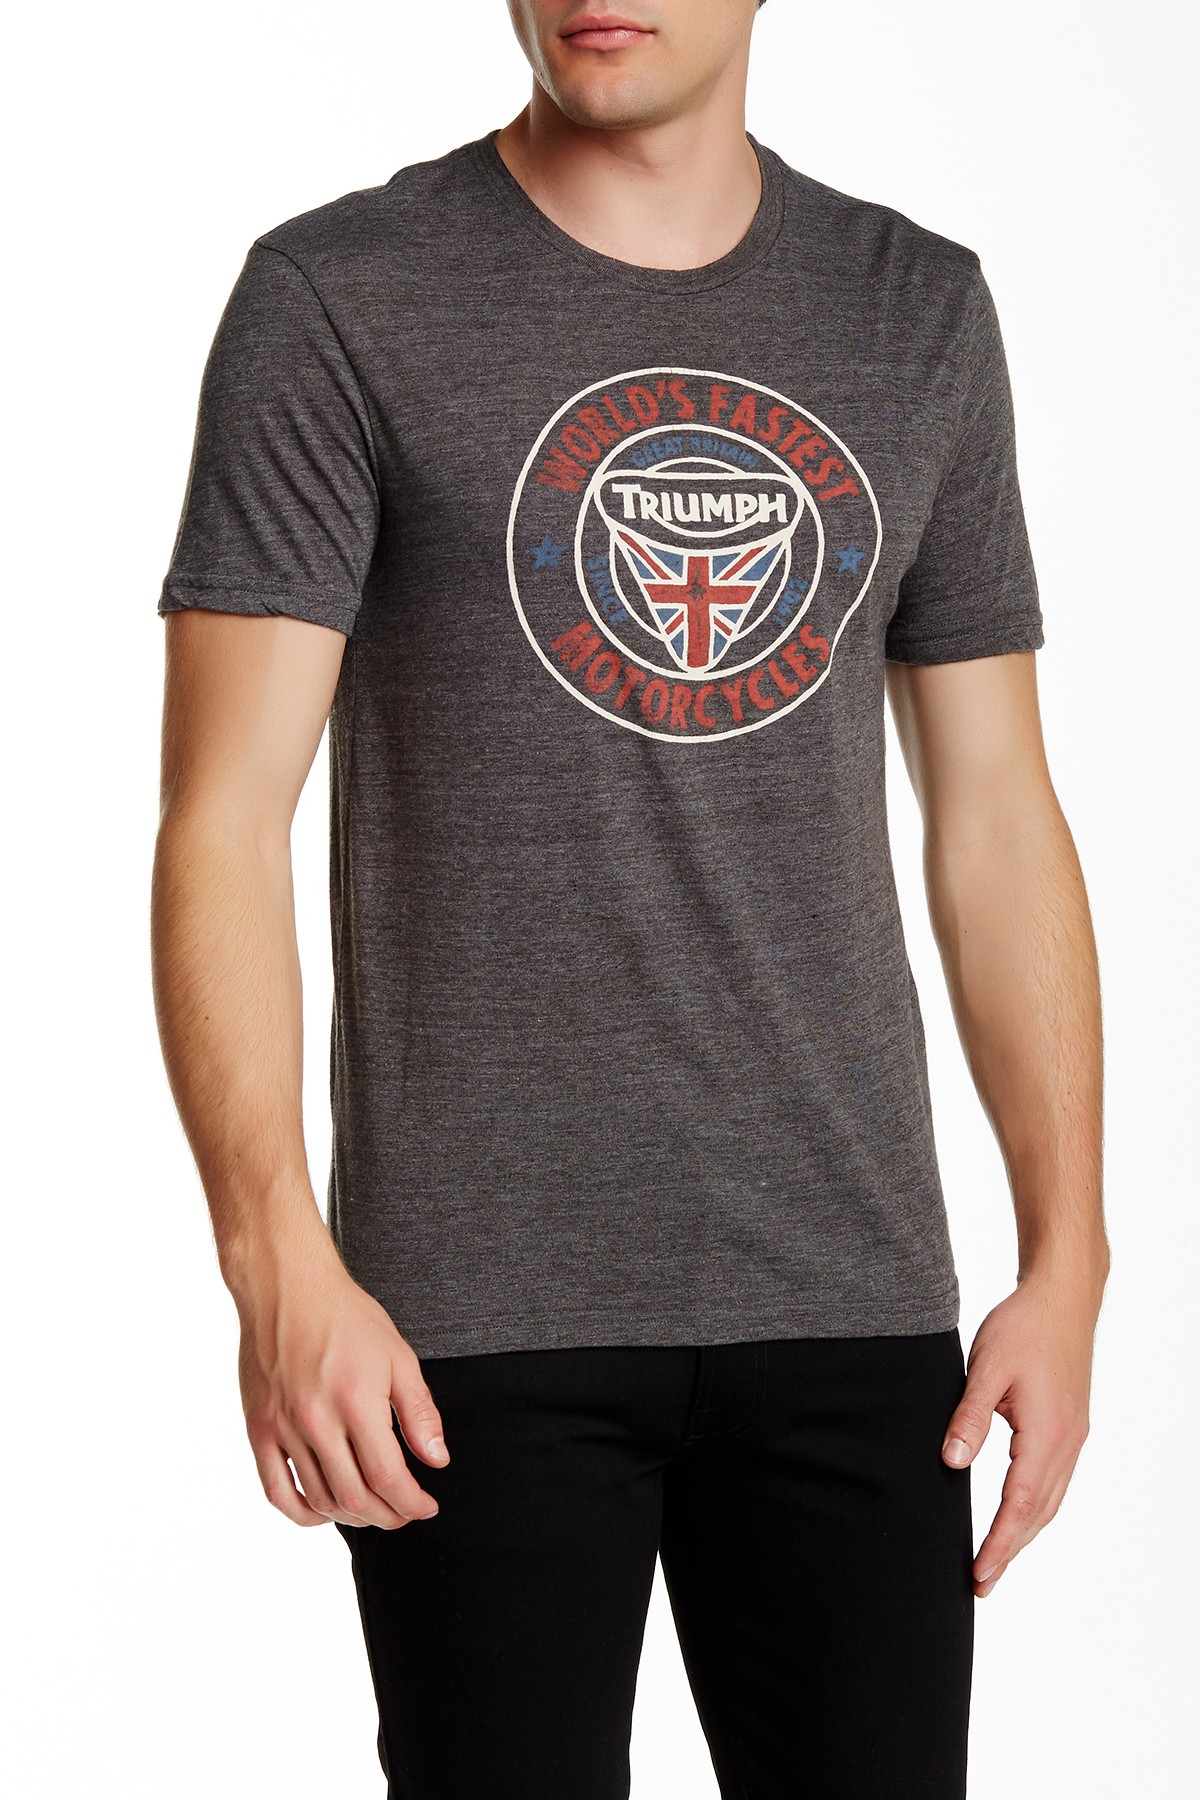 Lyst lucky brand triumph tee in gray for men for Lucky brand triumph shirt